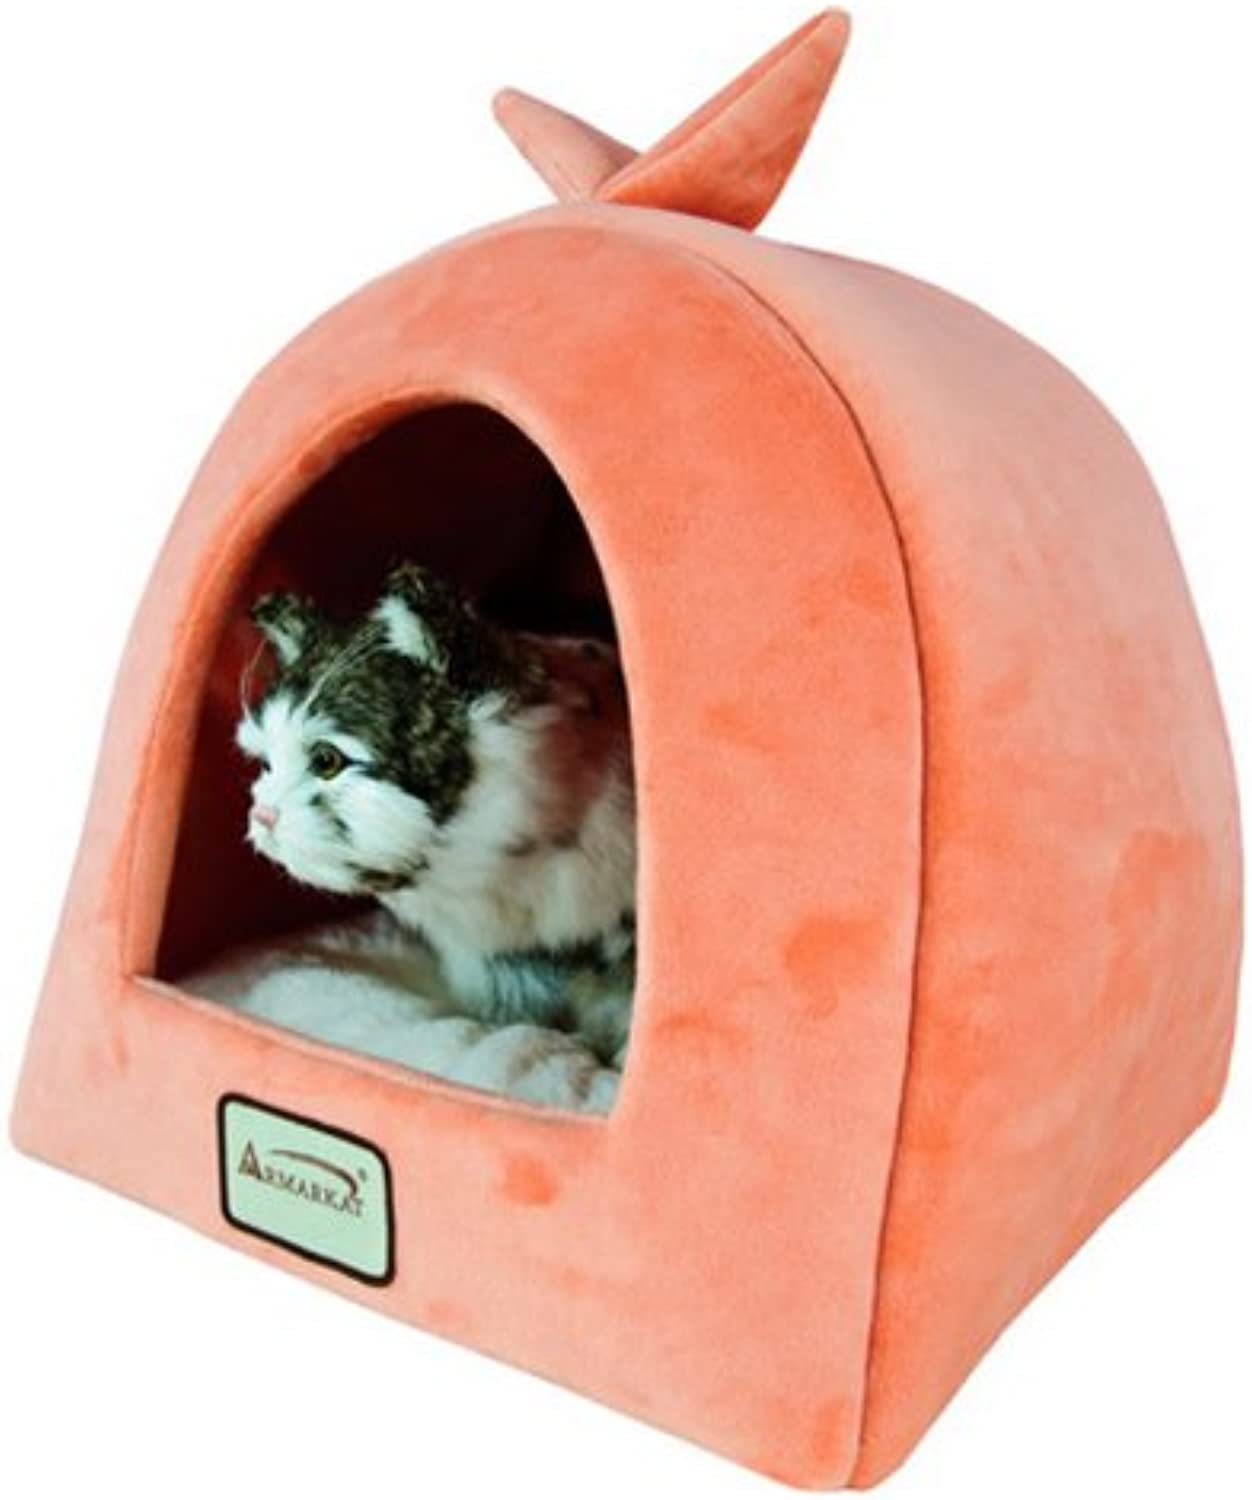 Armarkat Plush And Soft Velvet W  Waterproof Cat Sleeper Bed In orange And Ivory by Armarkat